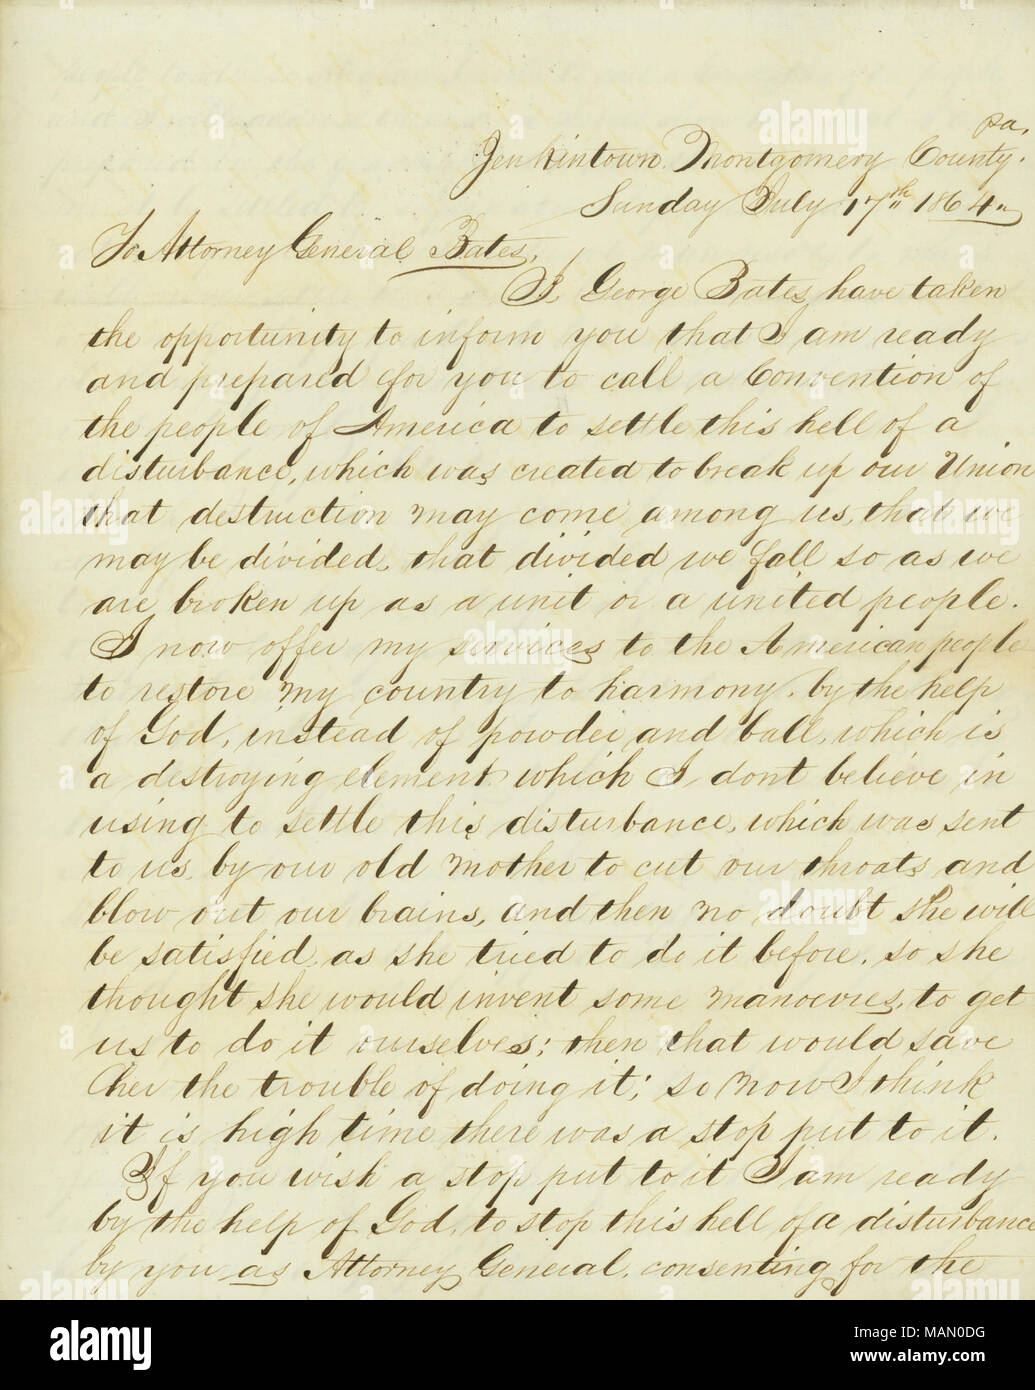 Requests that Edward Bates call a convention of the people of America to 'settle this hell of a disturbance, which was created to break up our Union.' Title: Letter signed George Bates, Jenkintown, Montgomery County, Pa., to Attorney General Bates [Edward Bates], July 17, 1864  . 17 July 1864. Bates, George - Stock Image